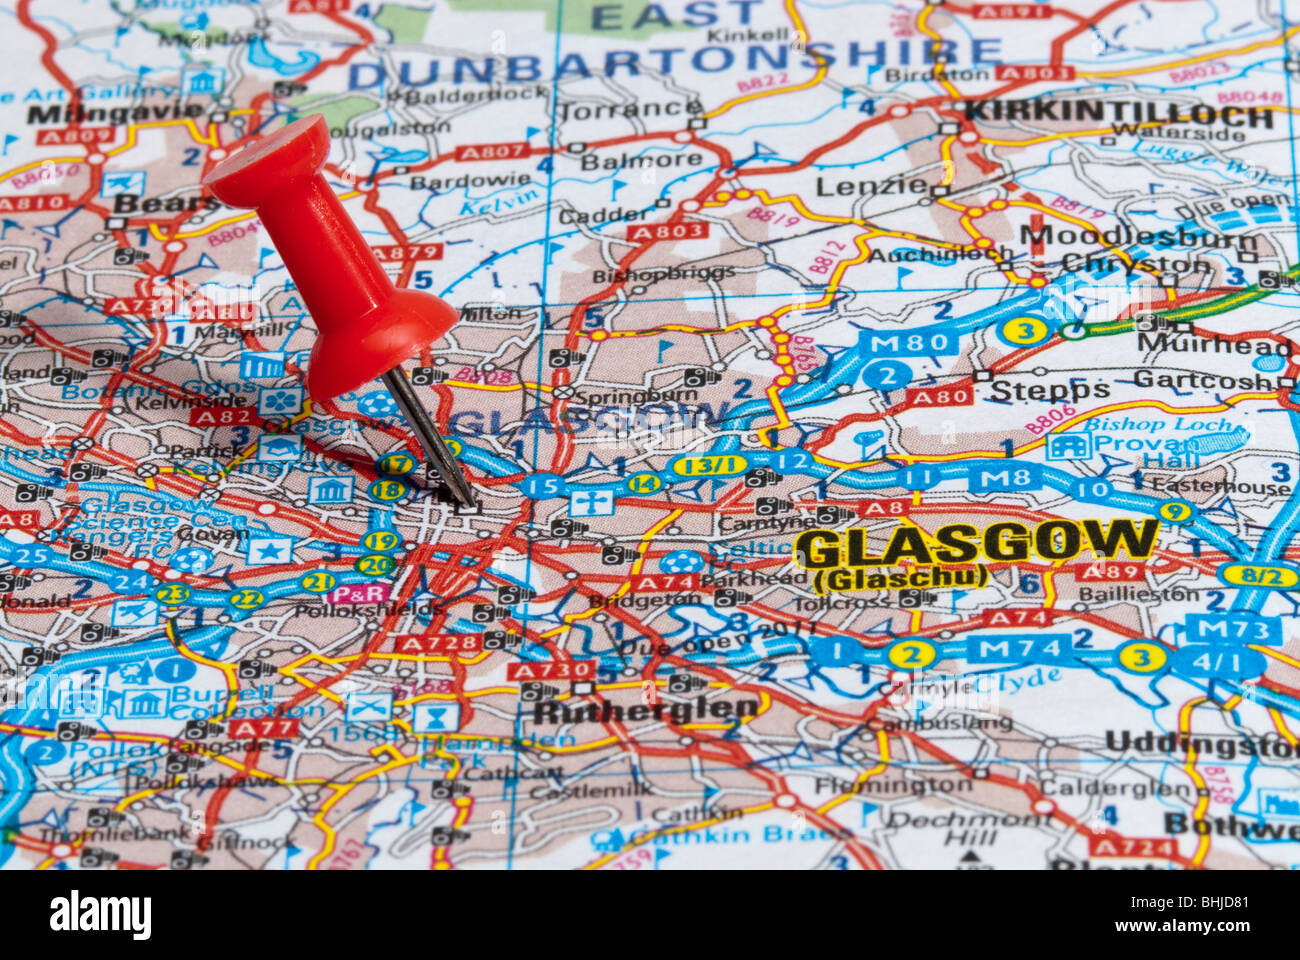 Map City Glasgow Map Pin Stock s & Map City Glasgow Map Pin